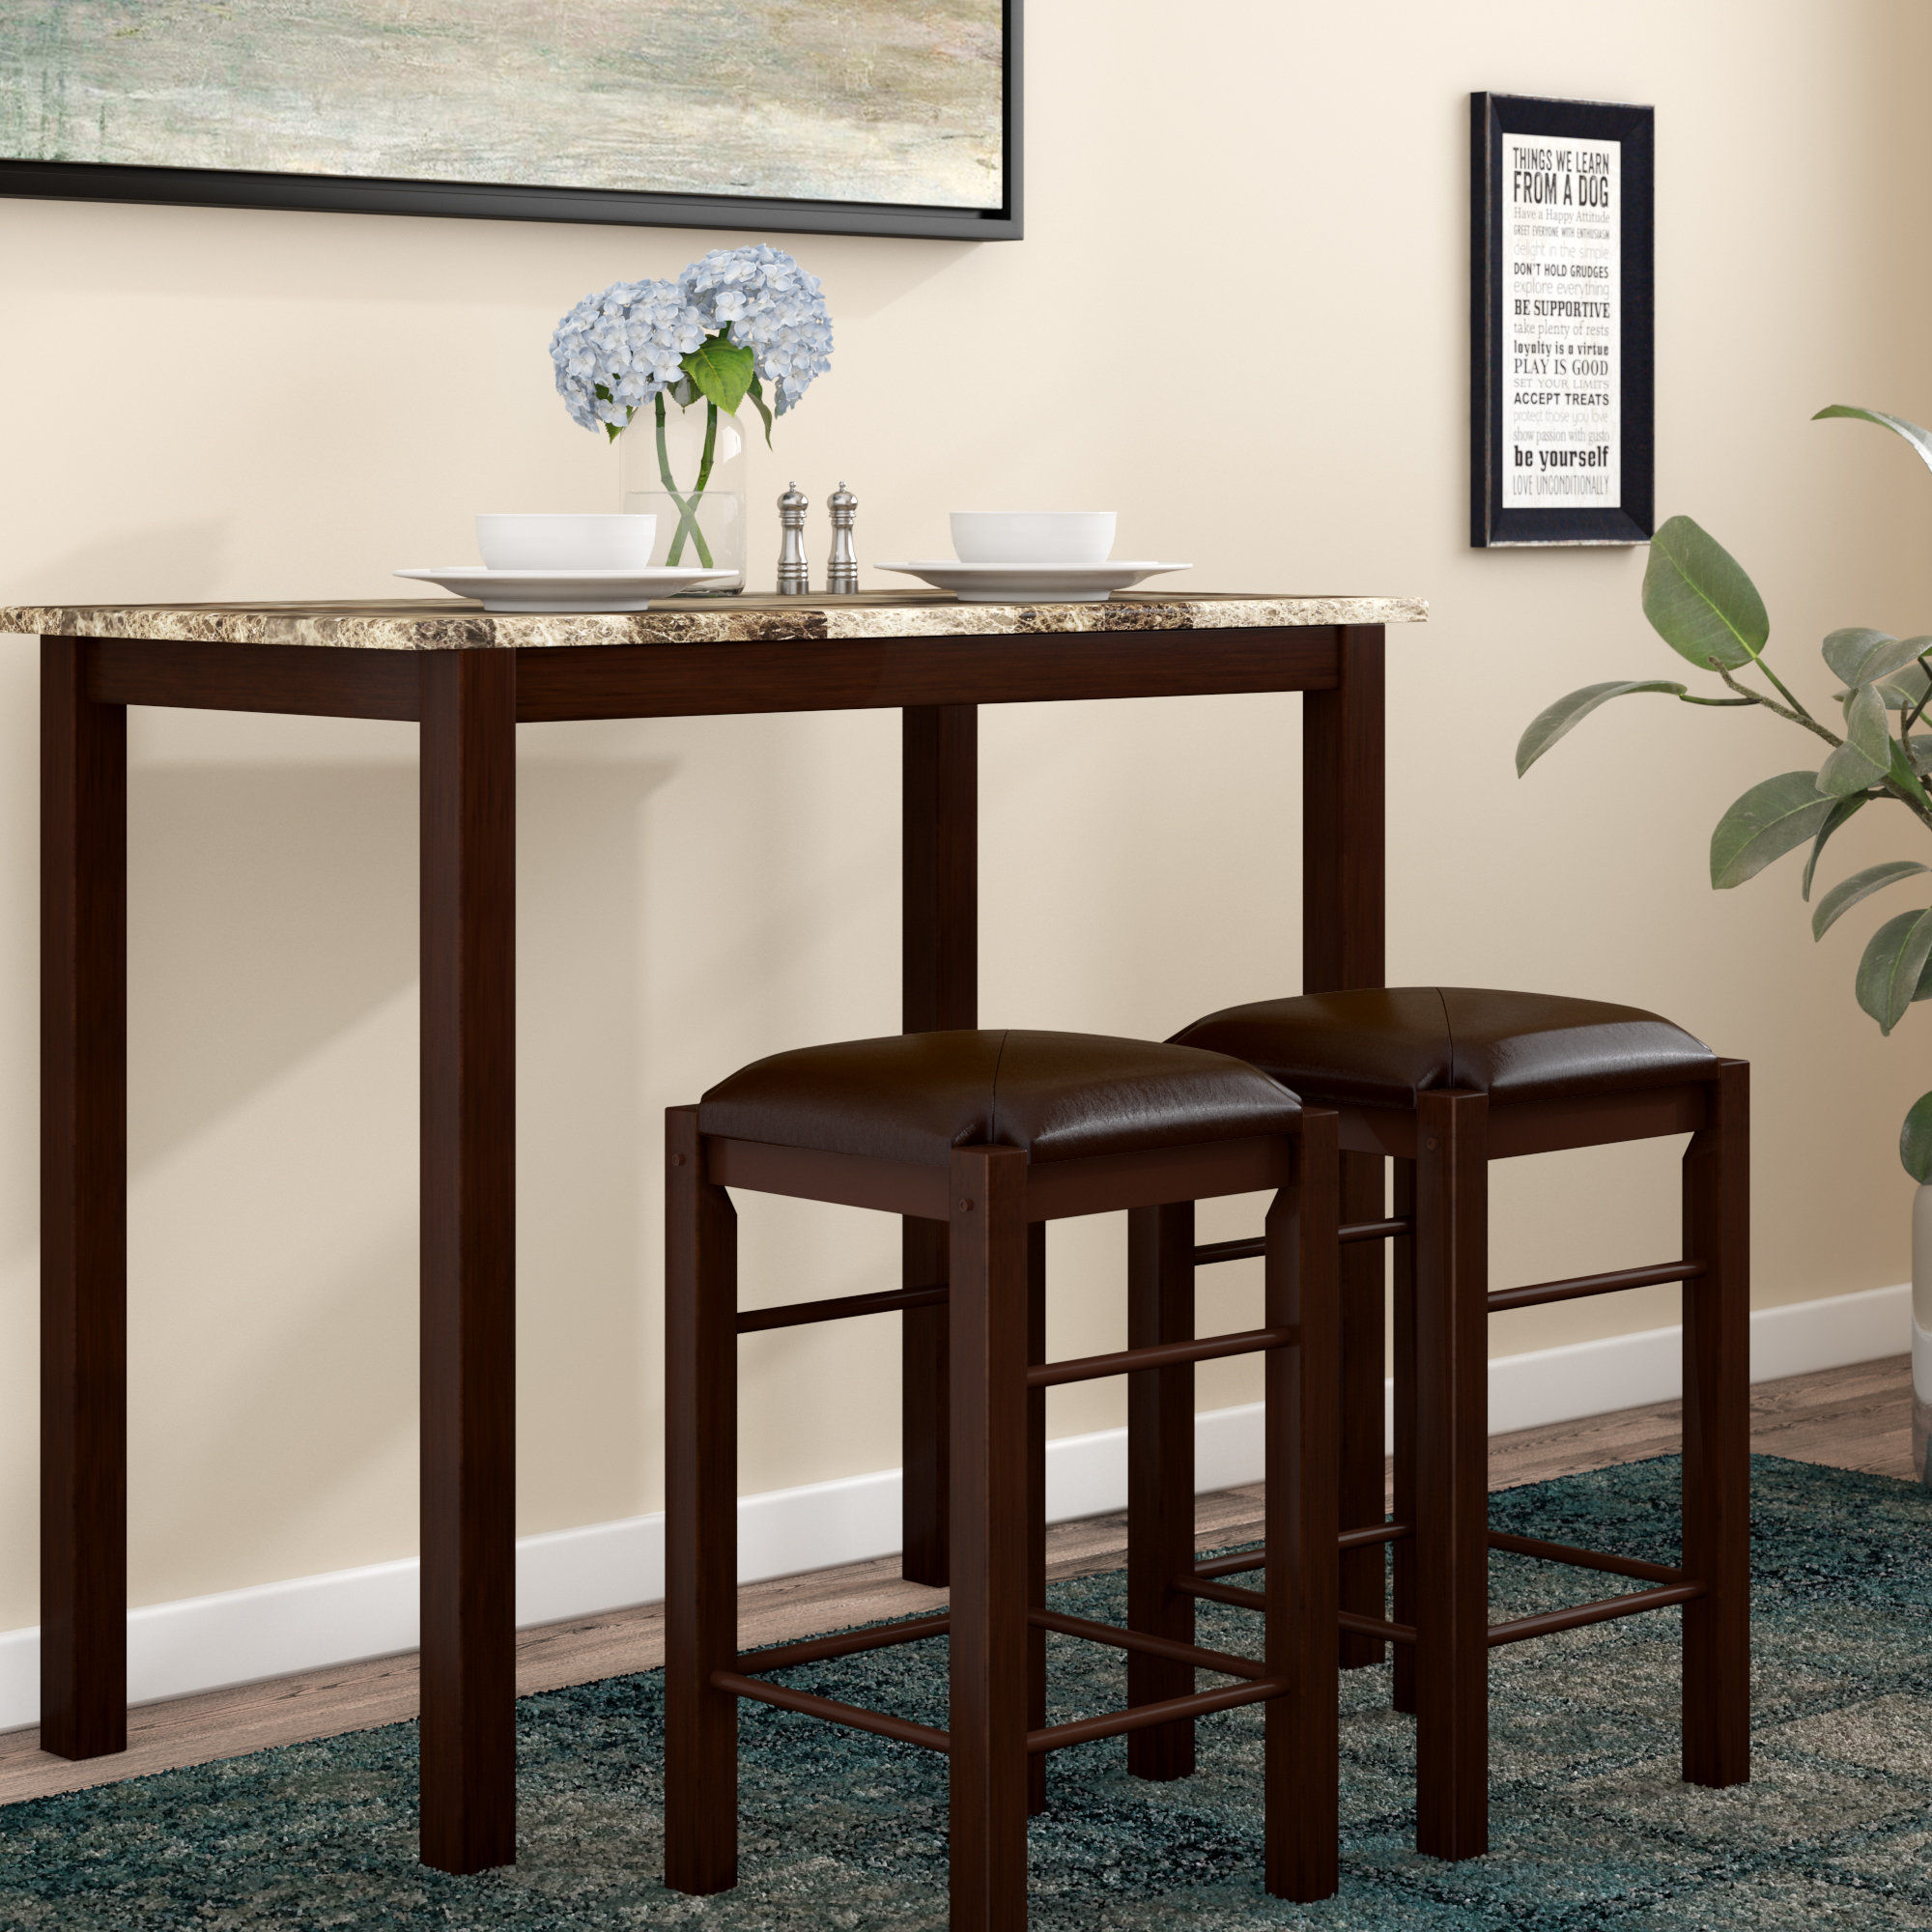 Penelope 3 Piece Counter Height Wood Dining Set Regarding Most Up To Date Lonon 3 Piece Dining Sets (Image 17 of 20)